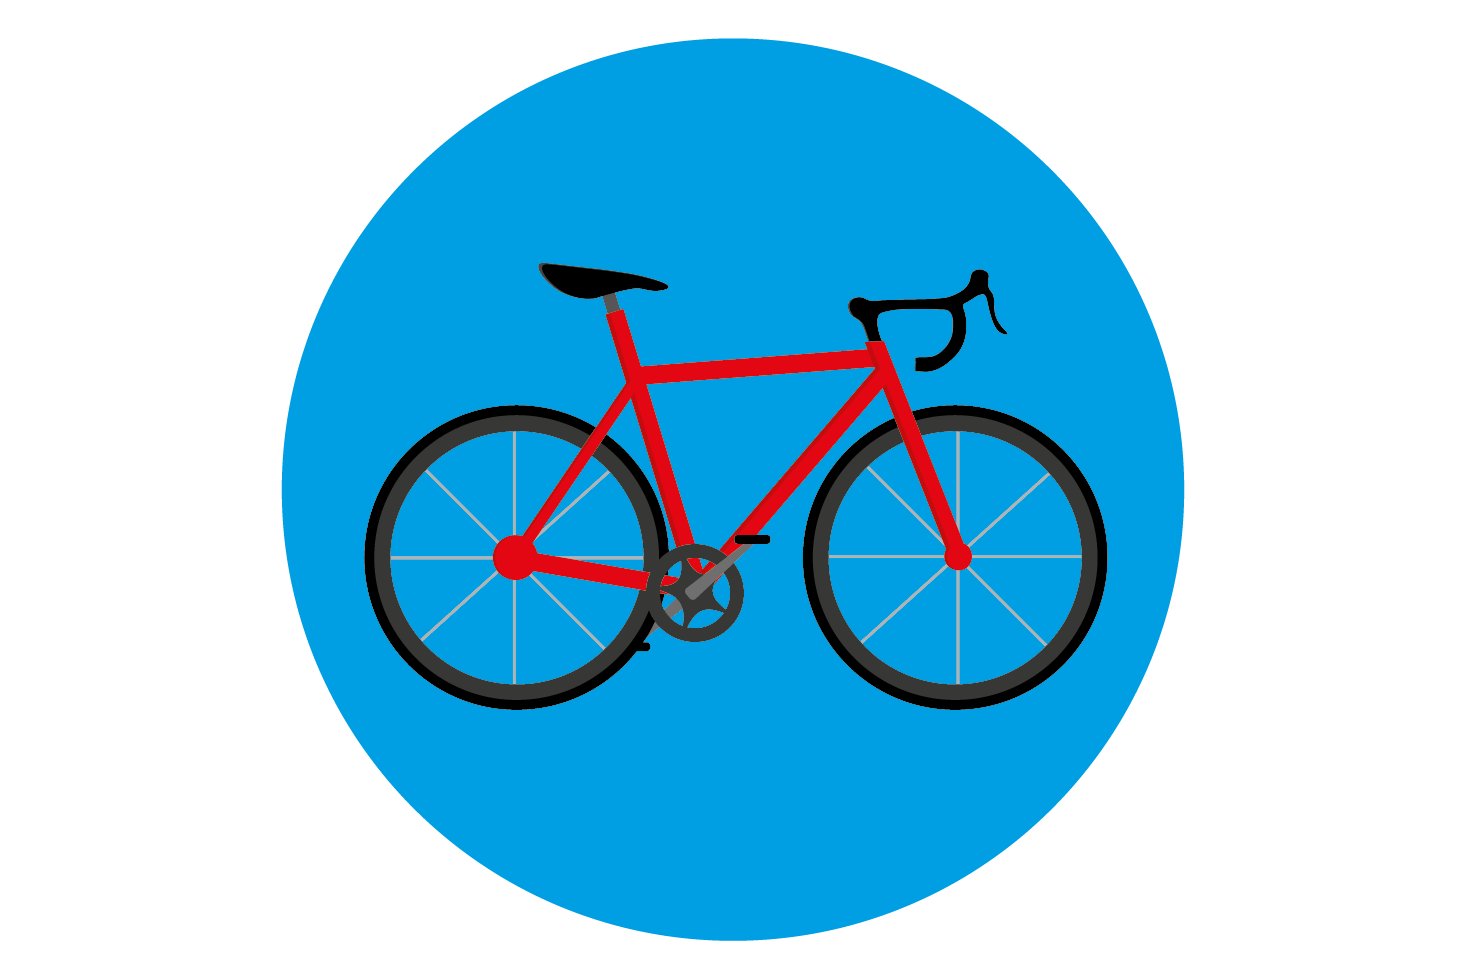 Illustration of a red racing bike on a blue circle